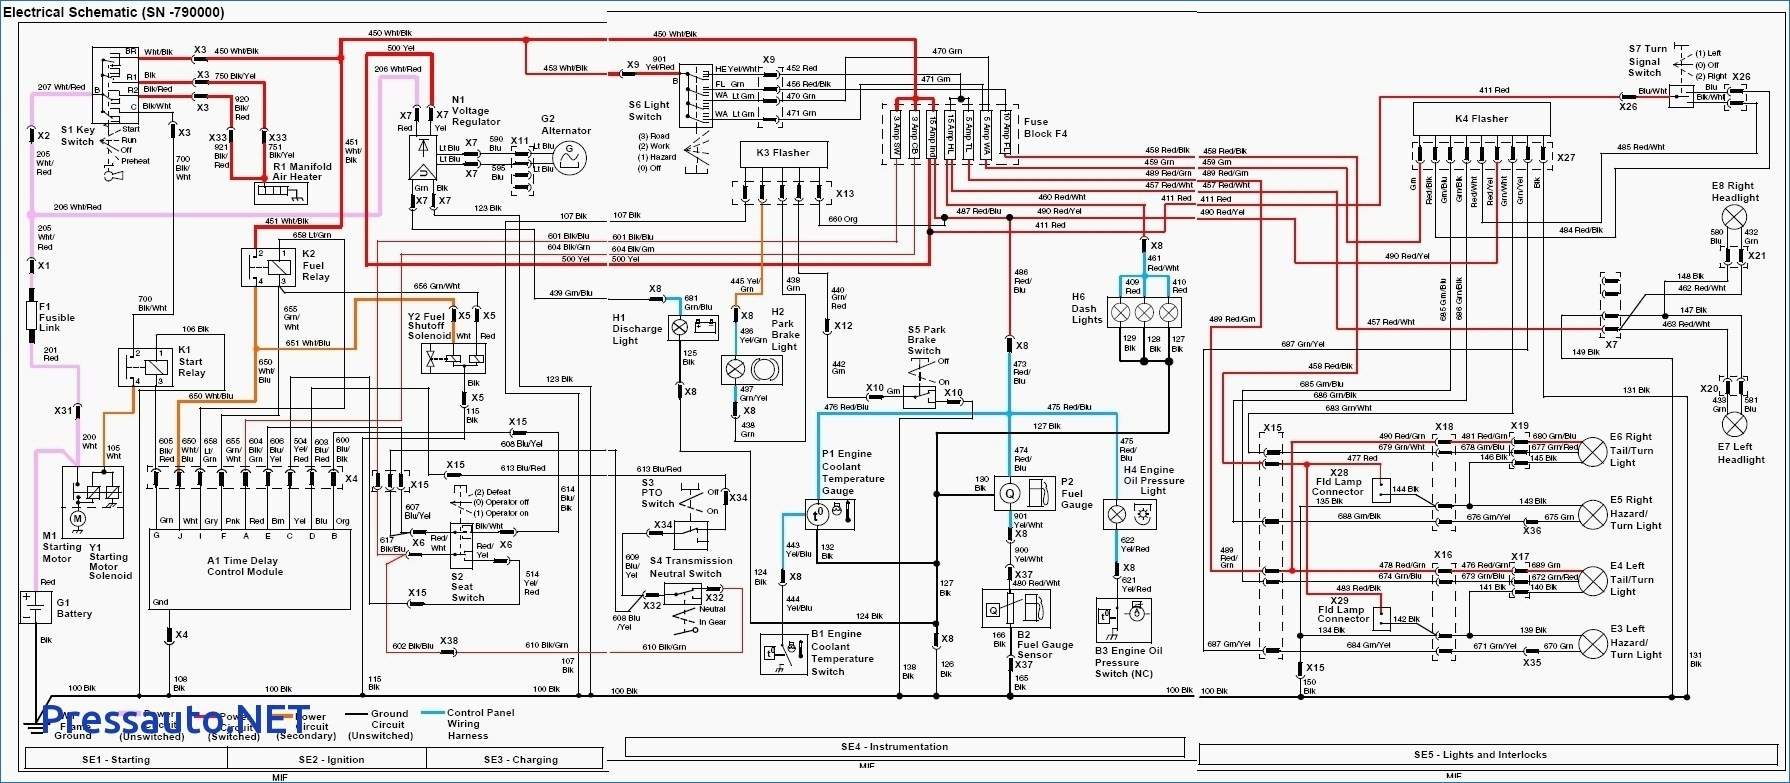 John Deere 345 Wiring Harness Schematic - daily update ... on